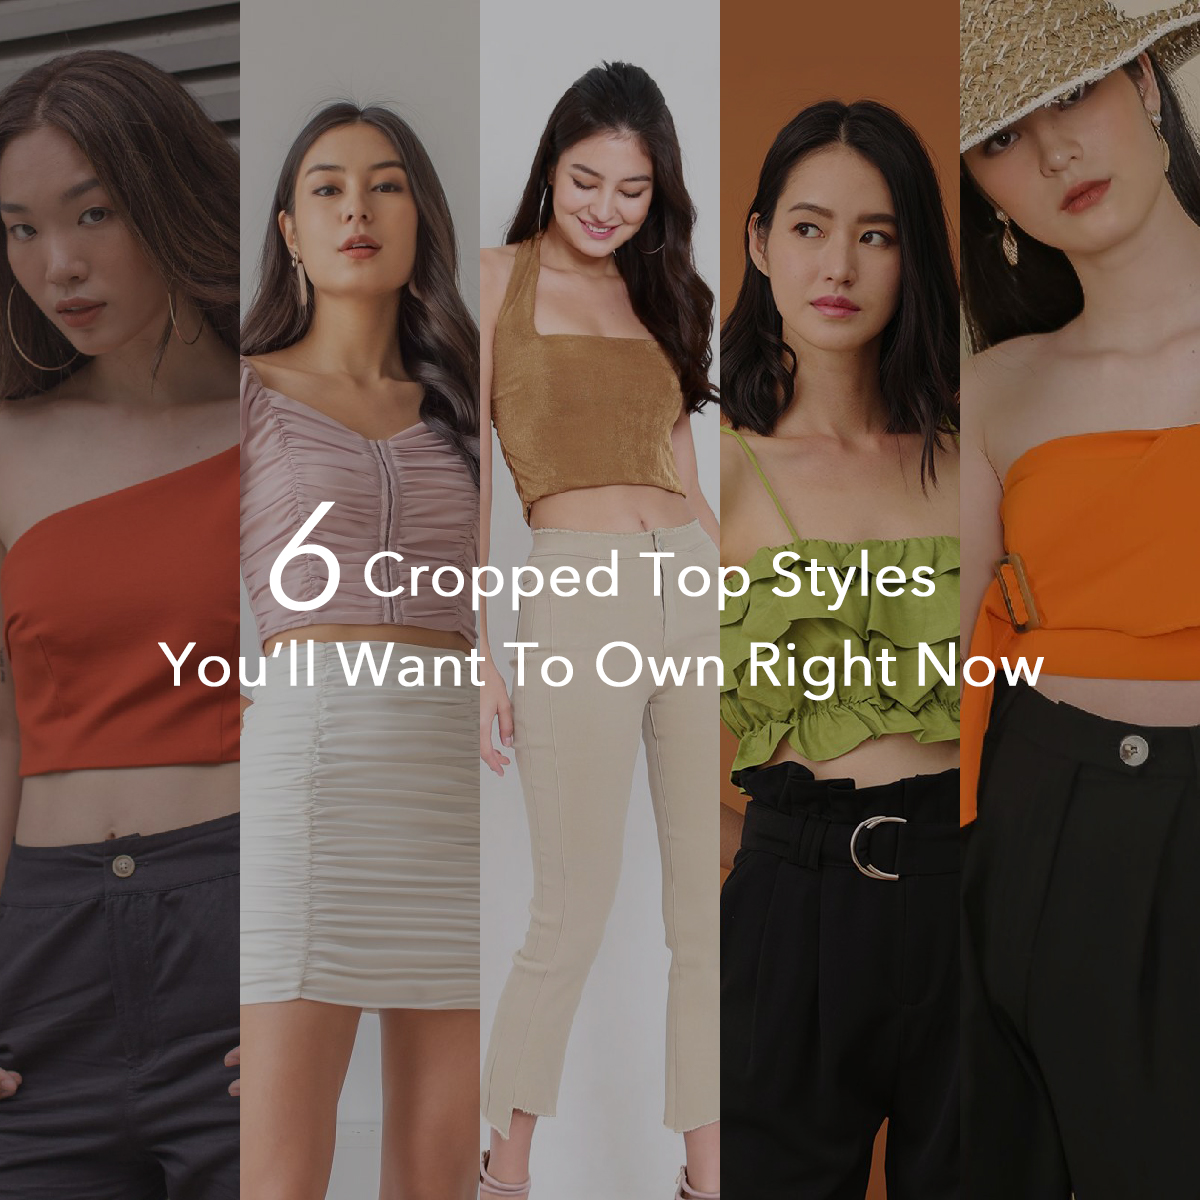 6 Cropped Top Styles You'll Want To Own Right Now